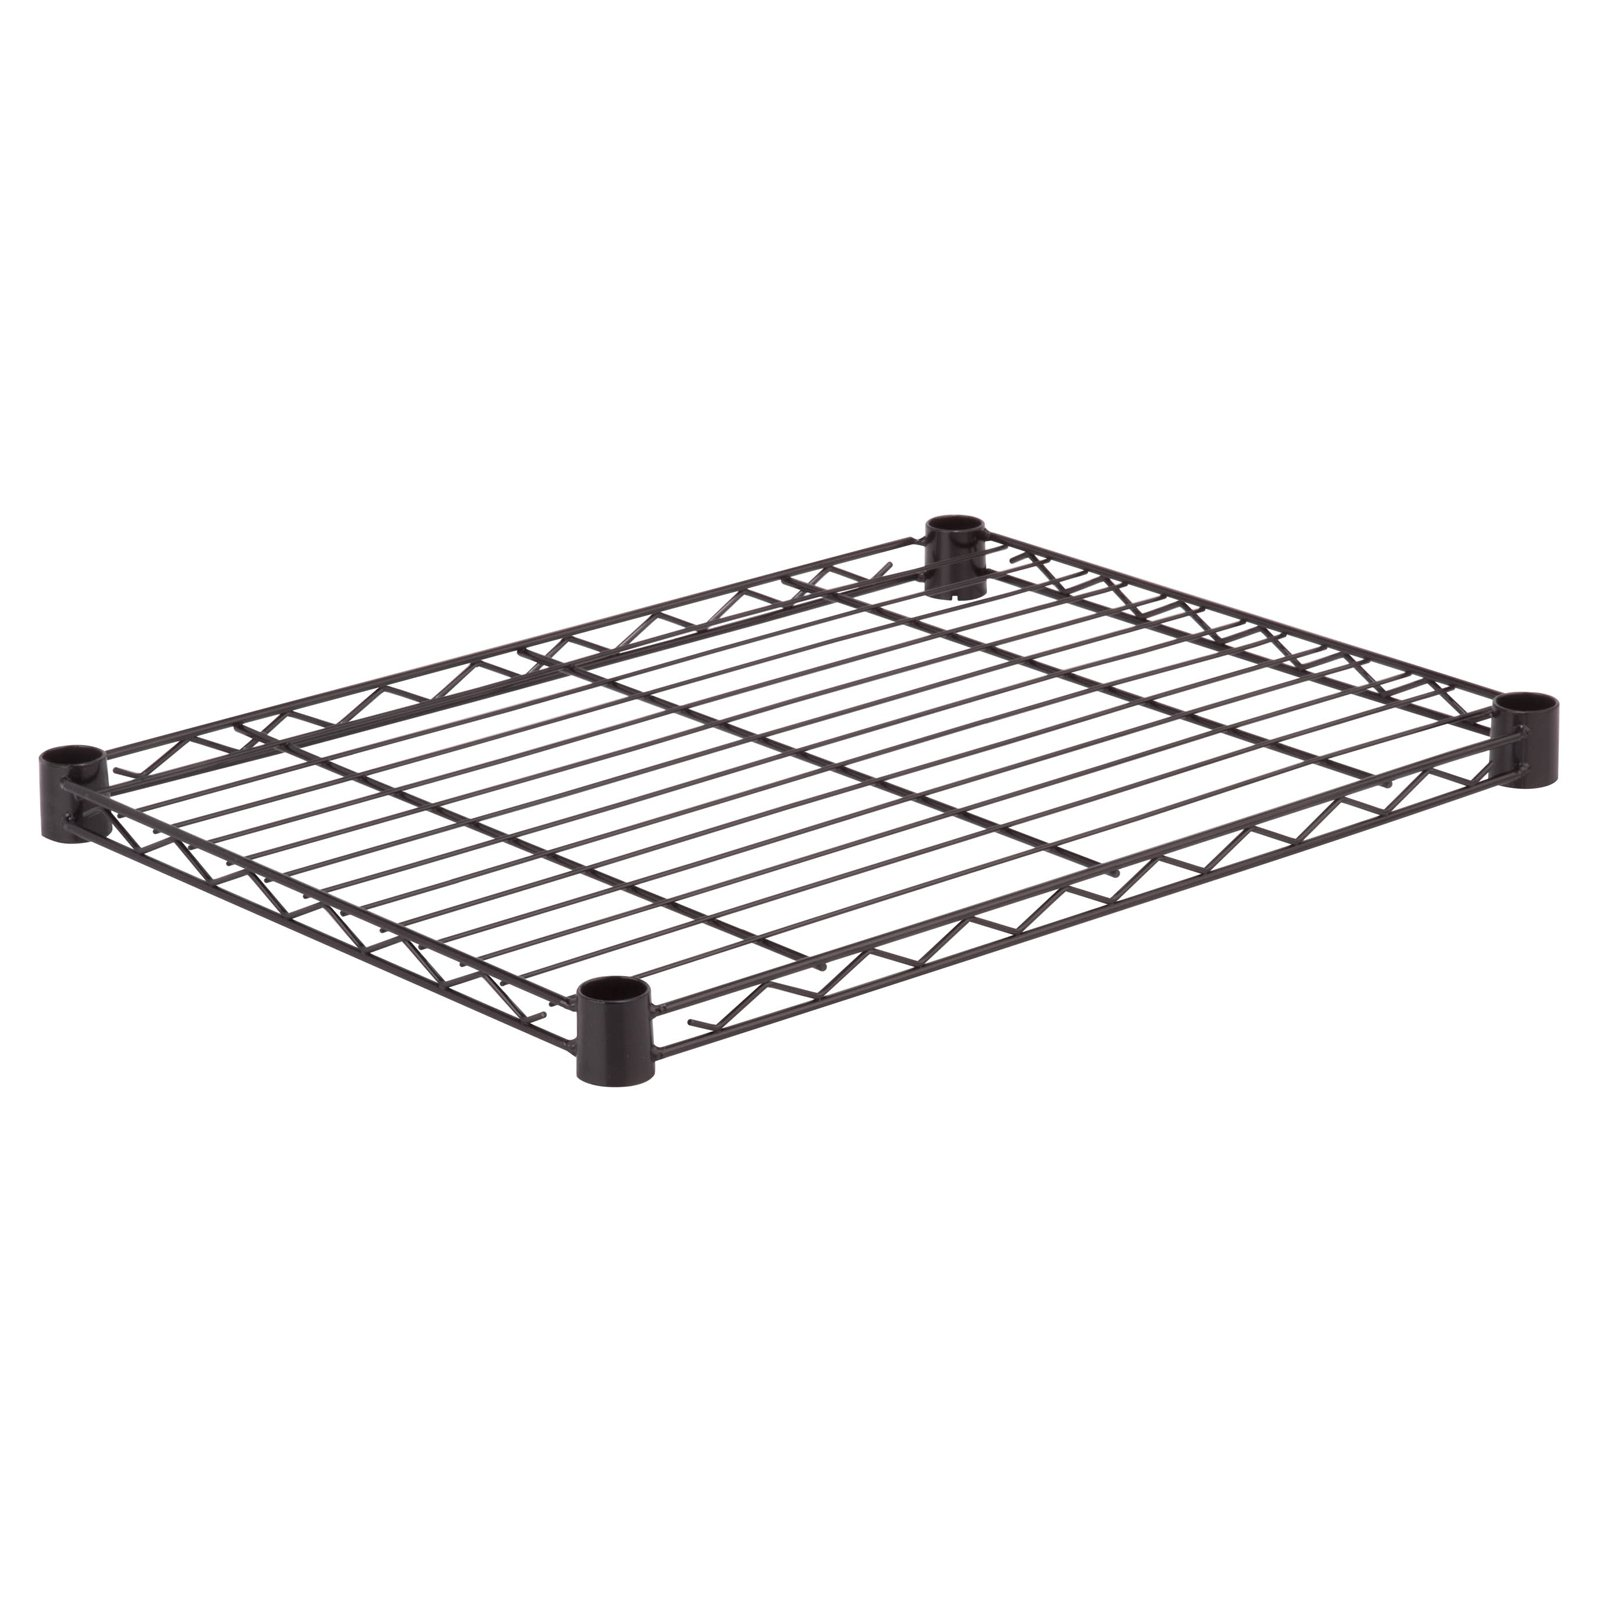 Honey Can Do Steel Wire Shelf with 250lb Capacity, Black